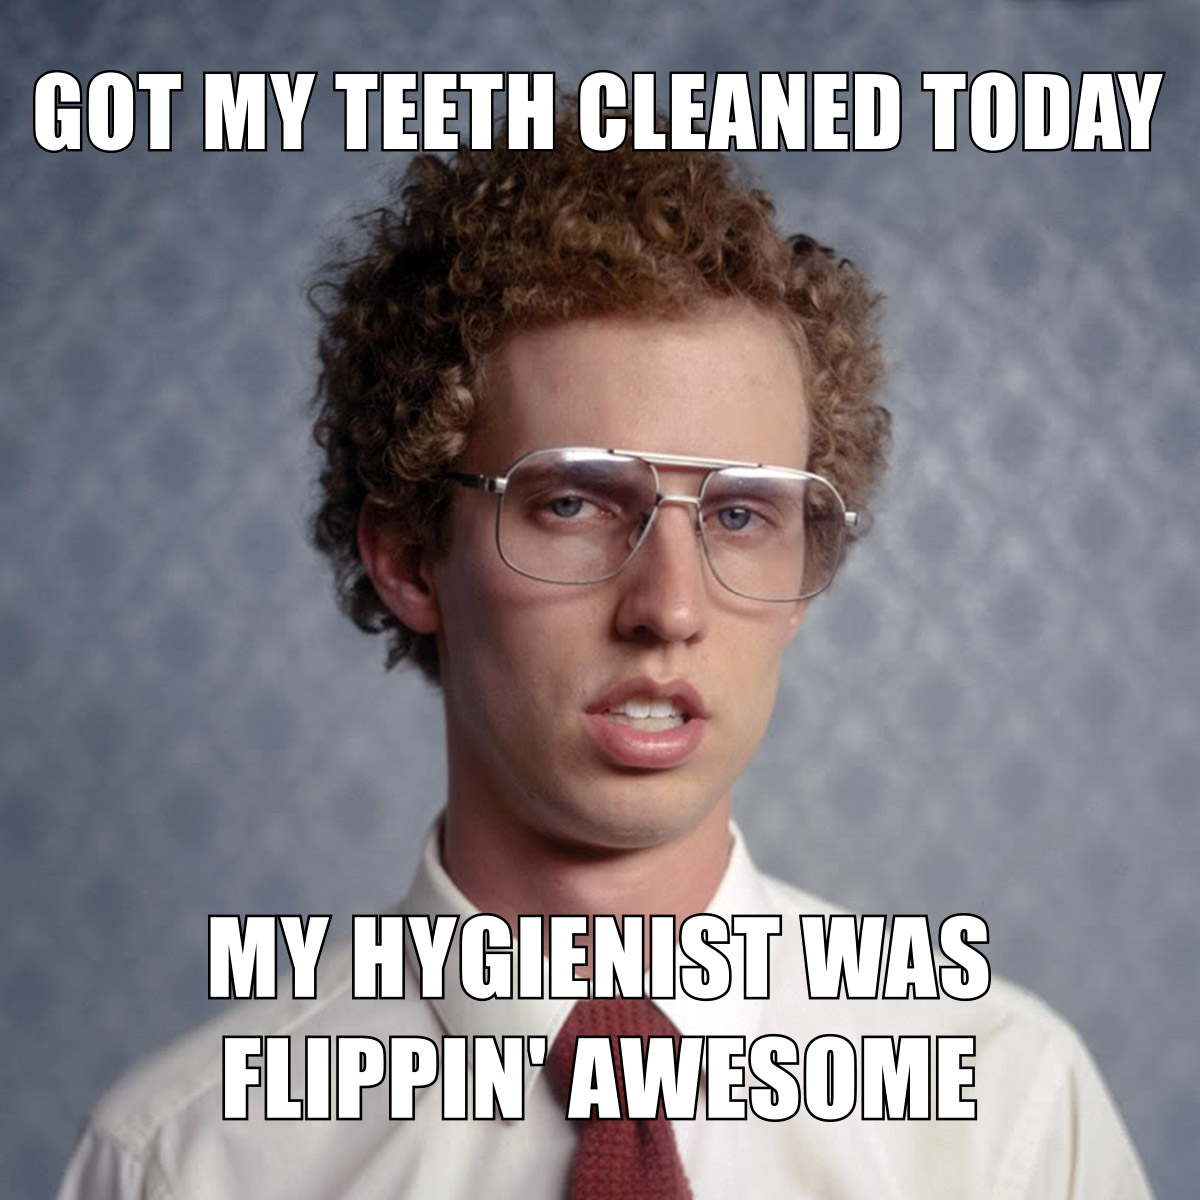 Springfield dental cleaning as told by Napoleon Dynamite